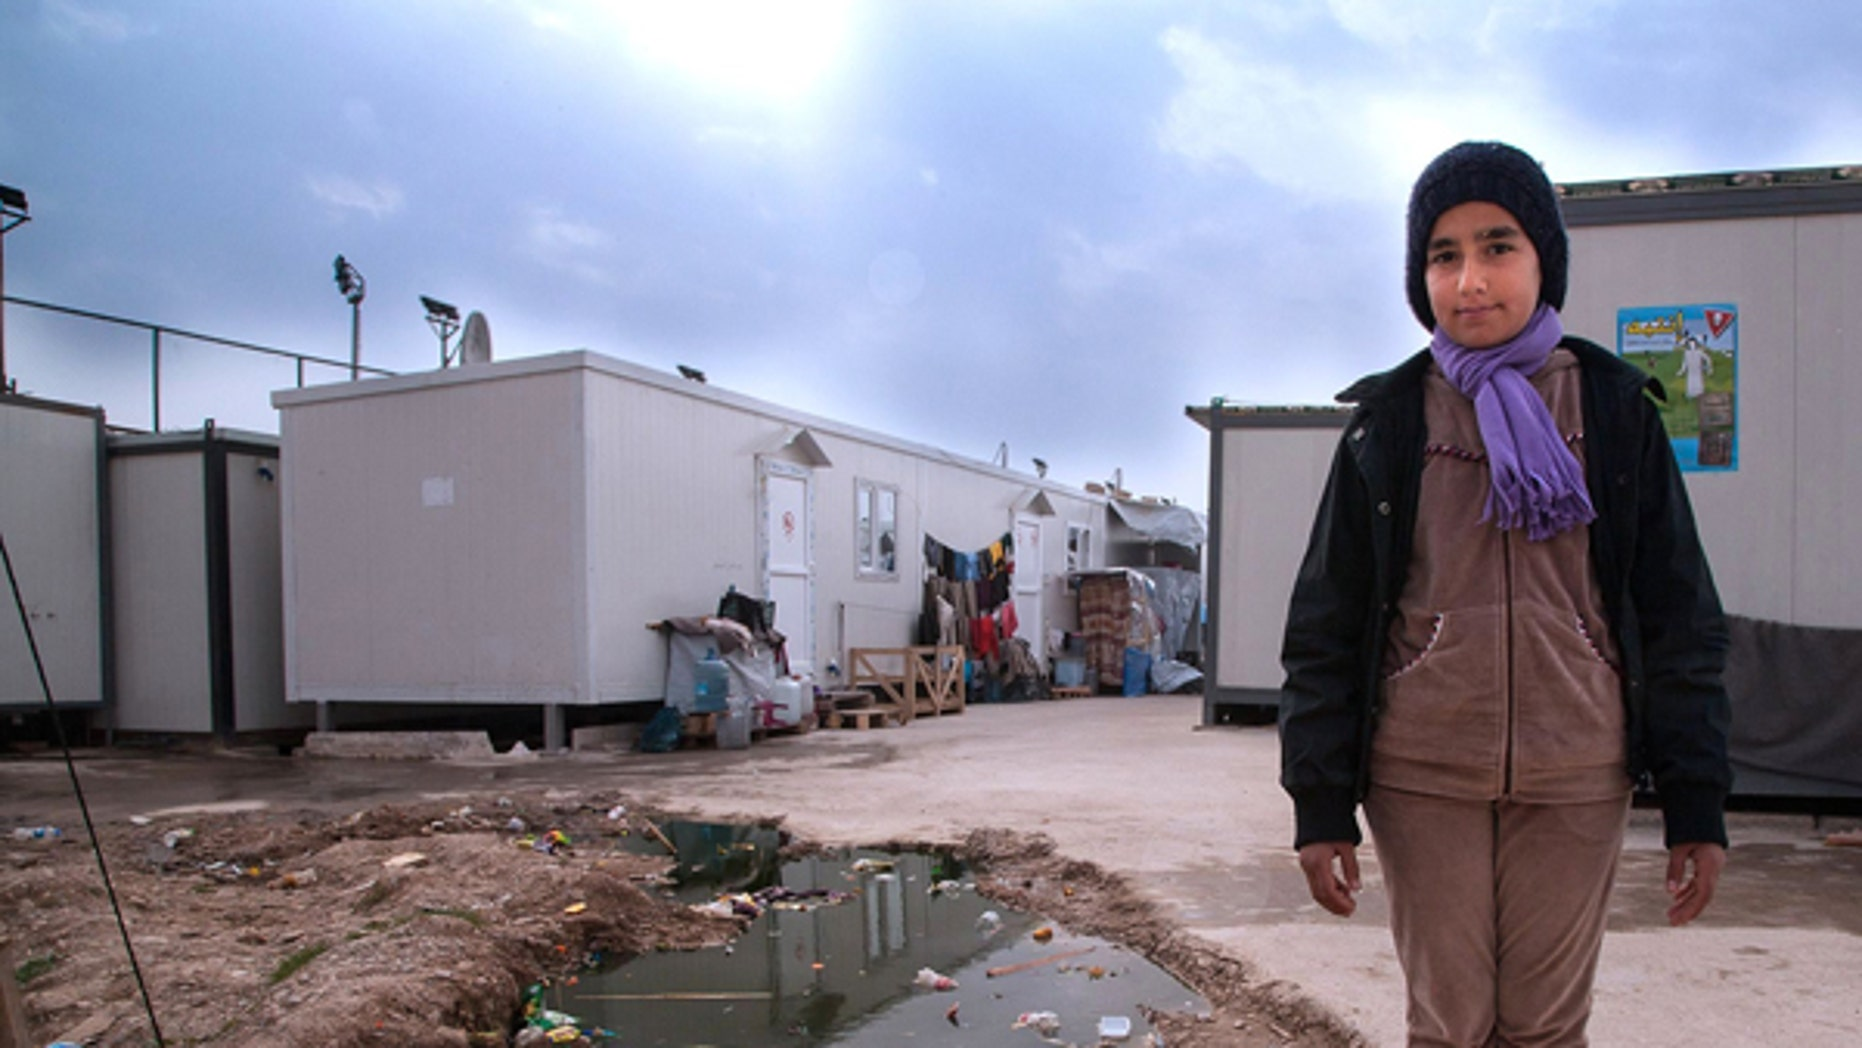 A new report claims that the Yazidi and Assyrian Christian refugees have been blocked from returning to their villages across the Nineveh Plain in northern Iraq by the Kurdish Regional Government.